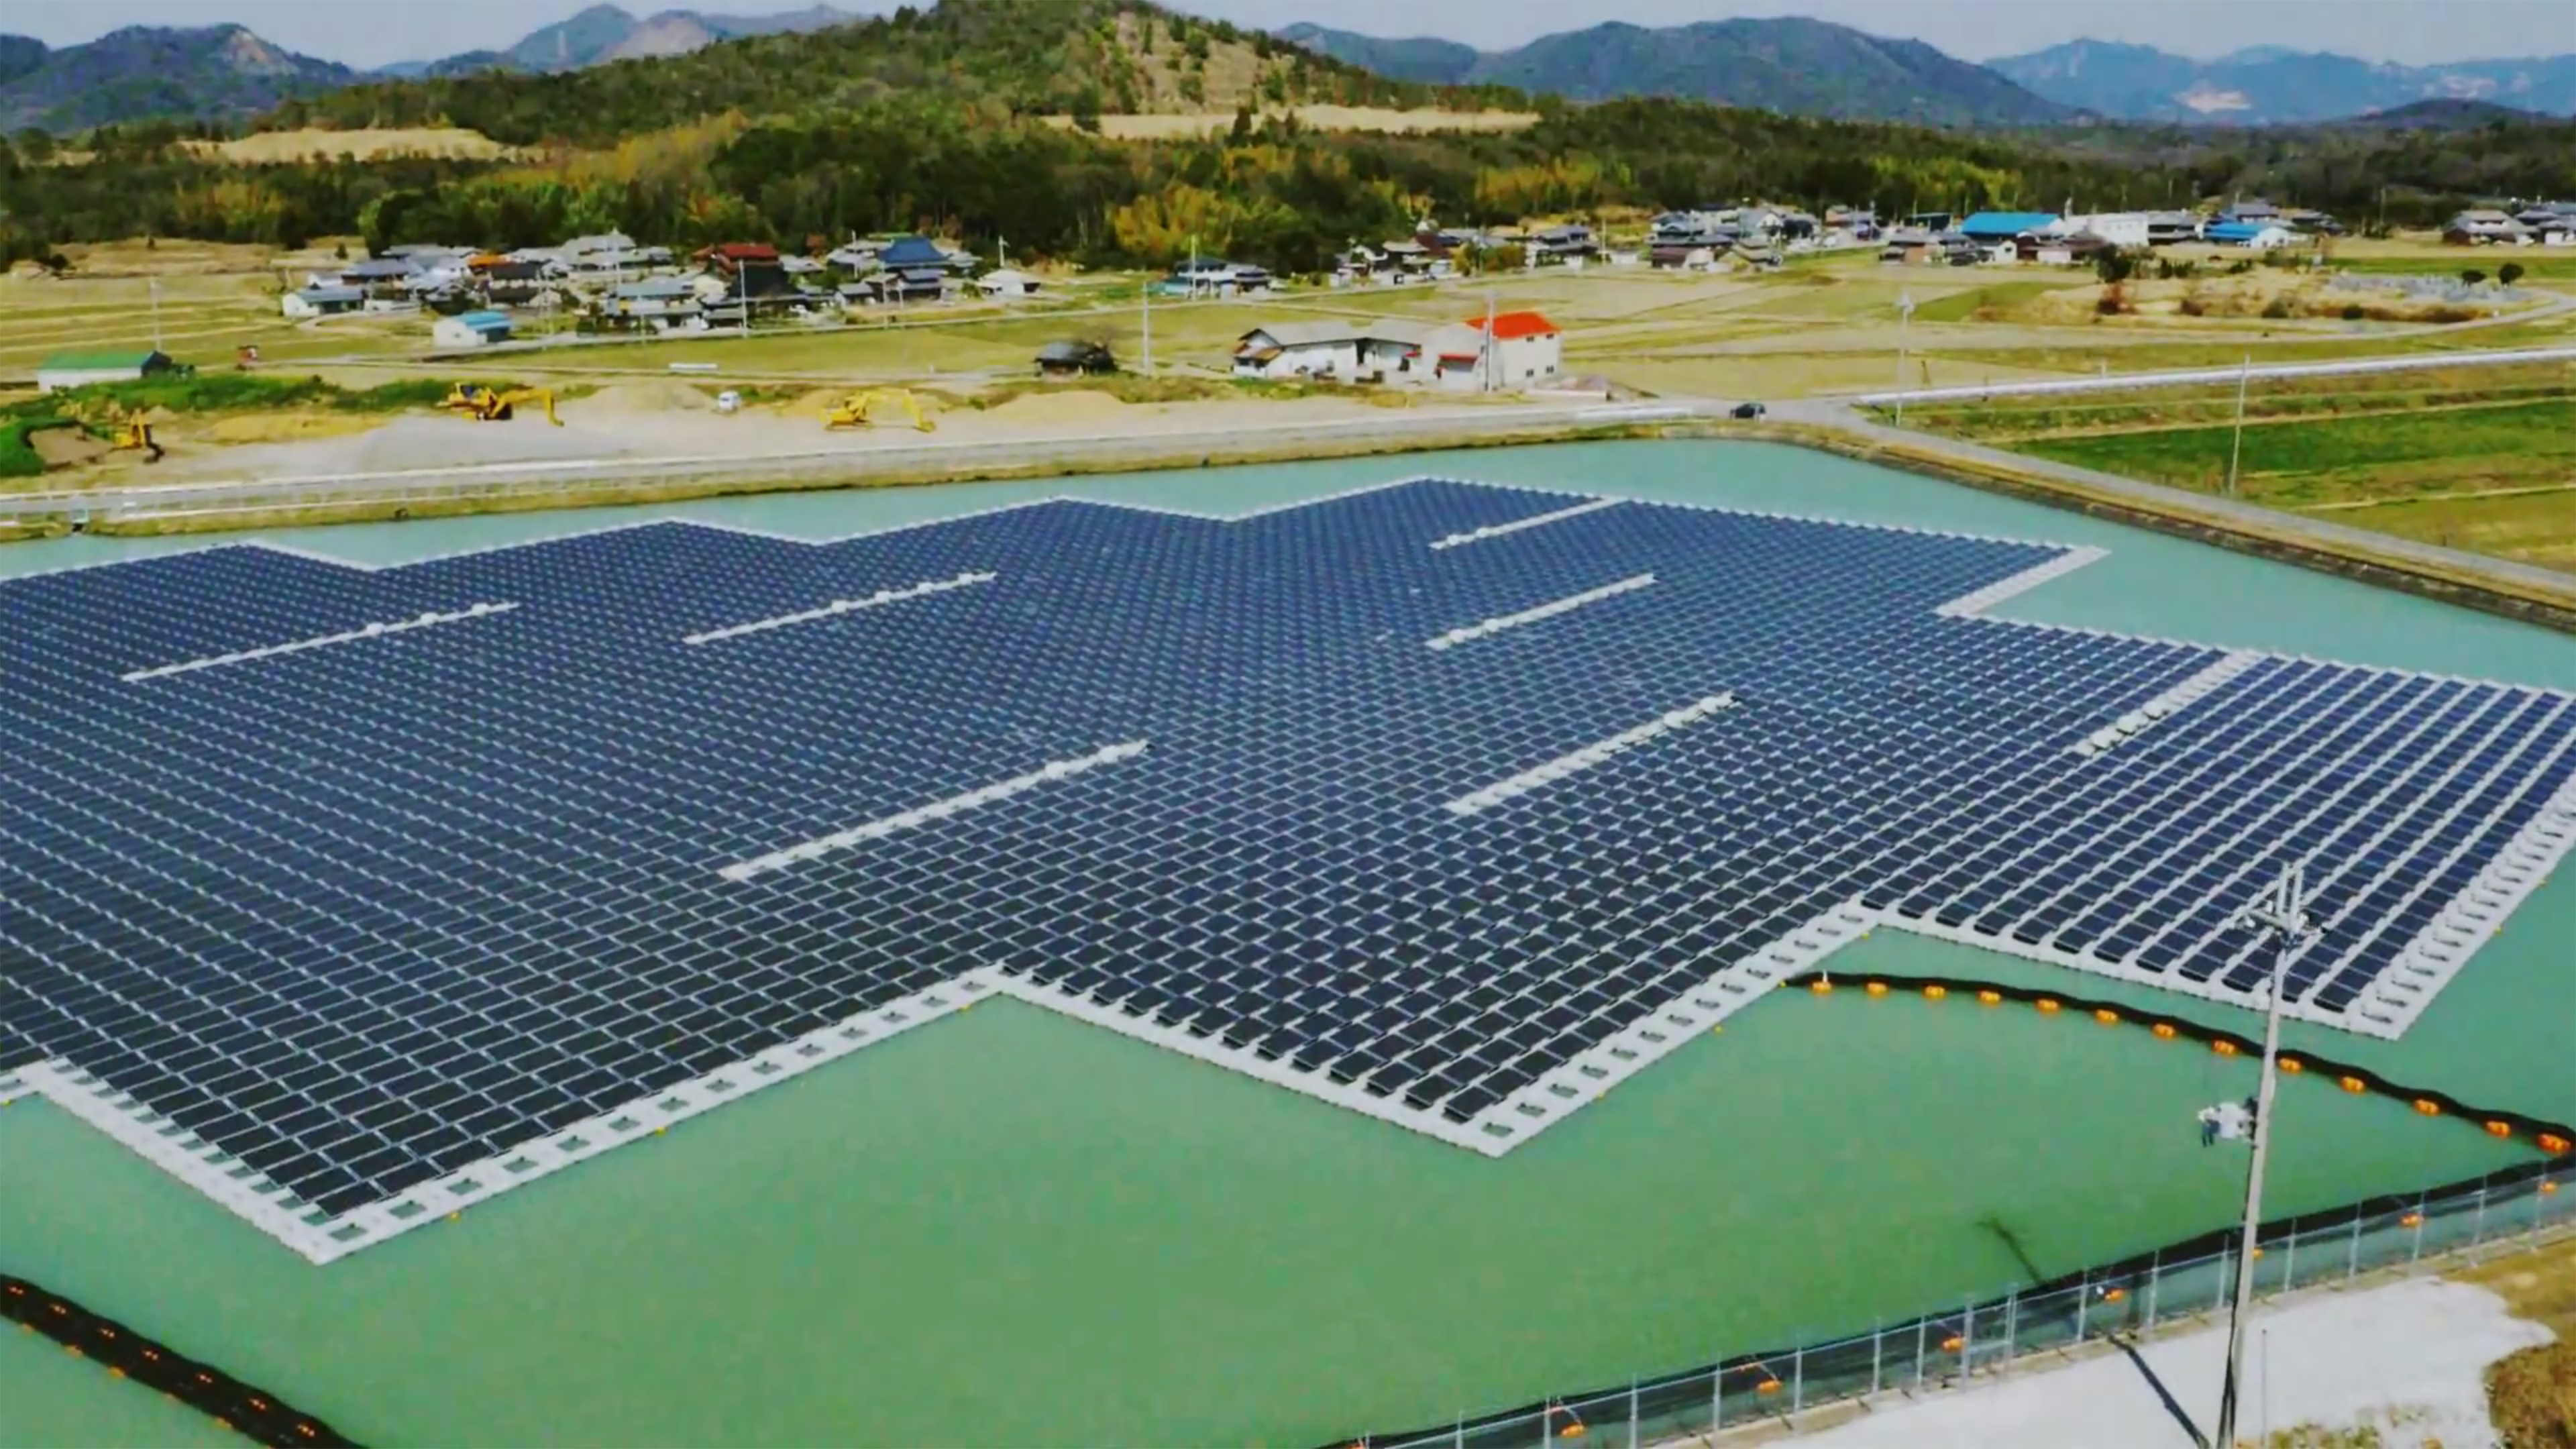 Construction has been pleted on two enormous floating solar